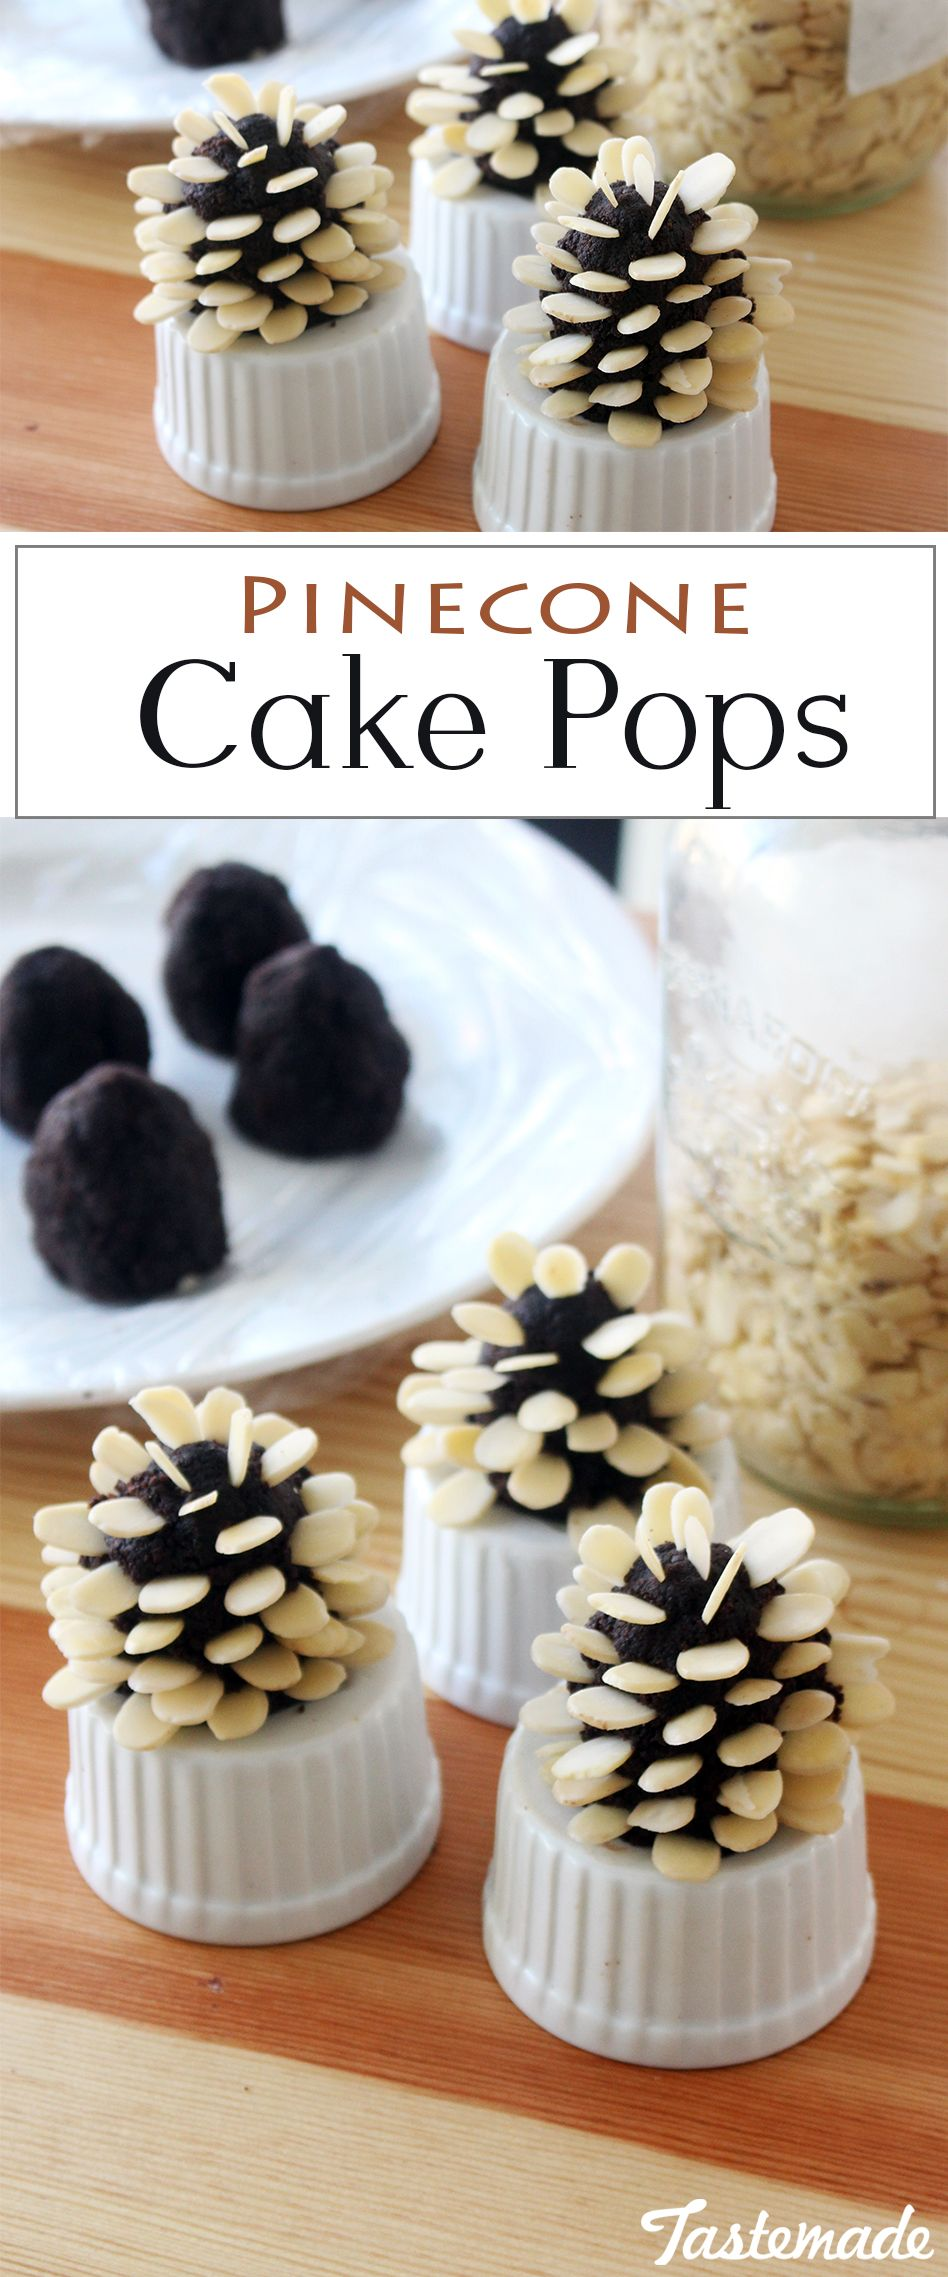 These chocolate cake pops are decorated with almonds to look like little pine cones!